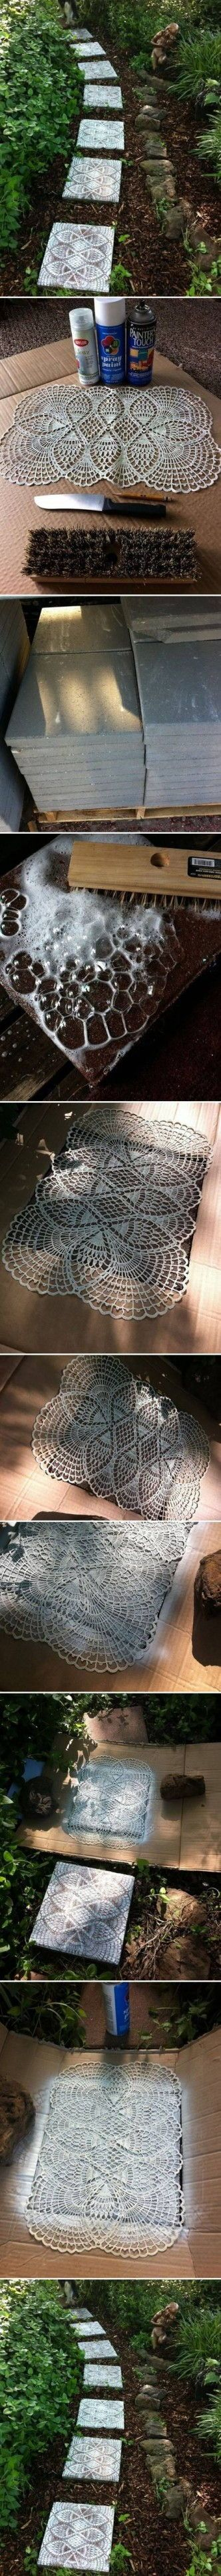 DIY Lace Like Stepping Stones DIY Projects